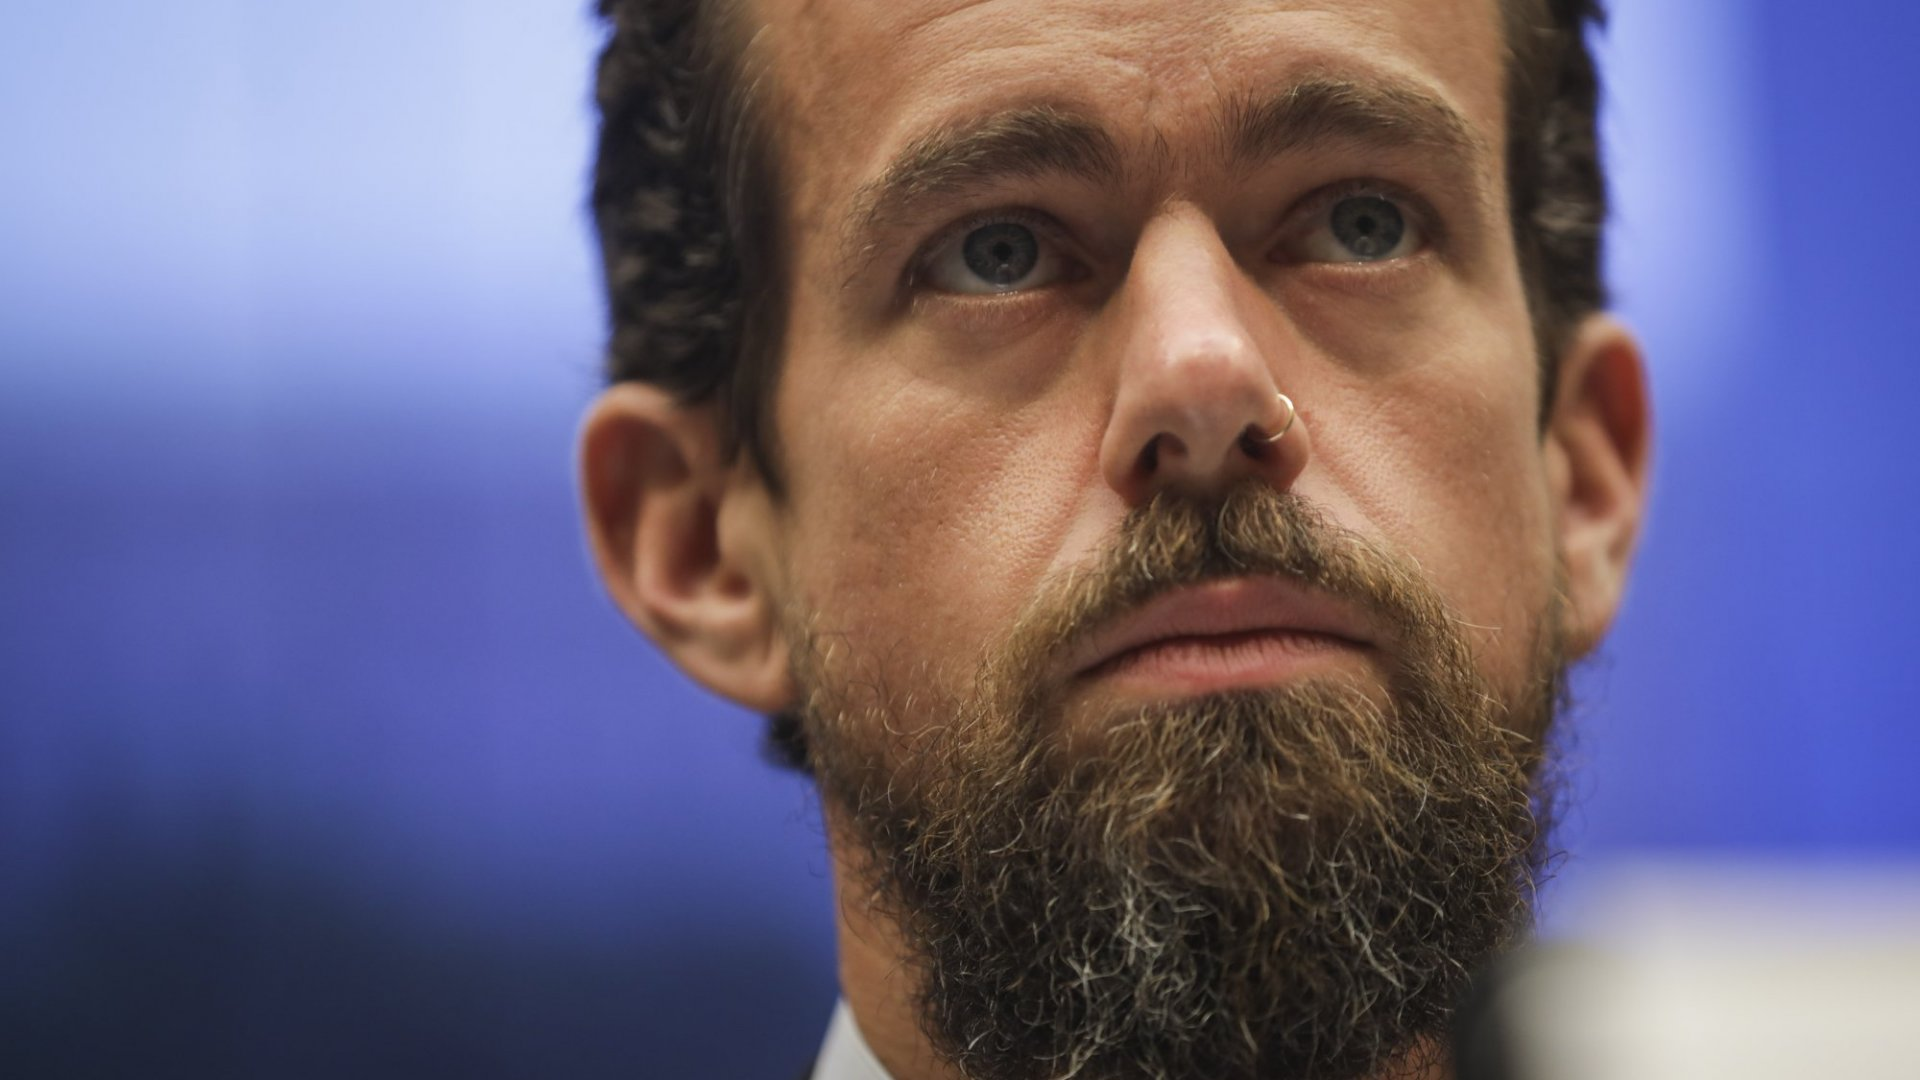 Twitter's Jack Dorsey Finally Did What Mark Zuckerberg Wouldn't Do: Pull Political Ads From His Platform